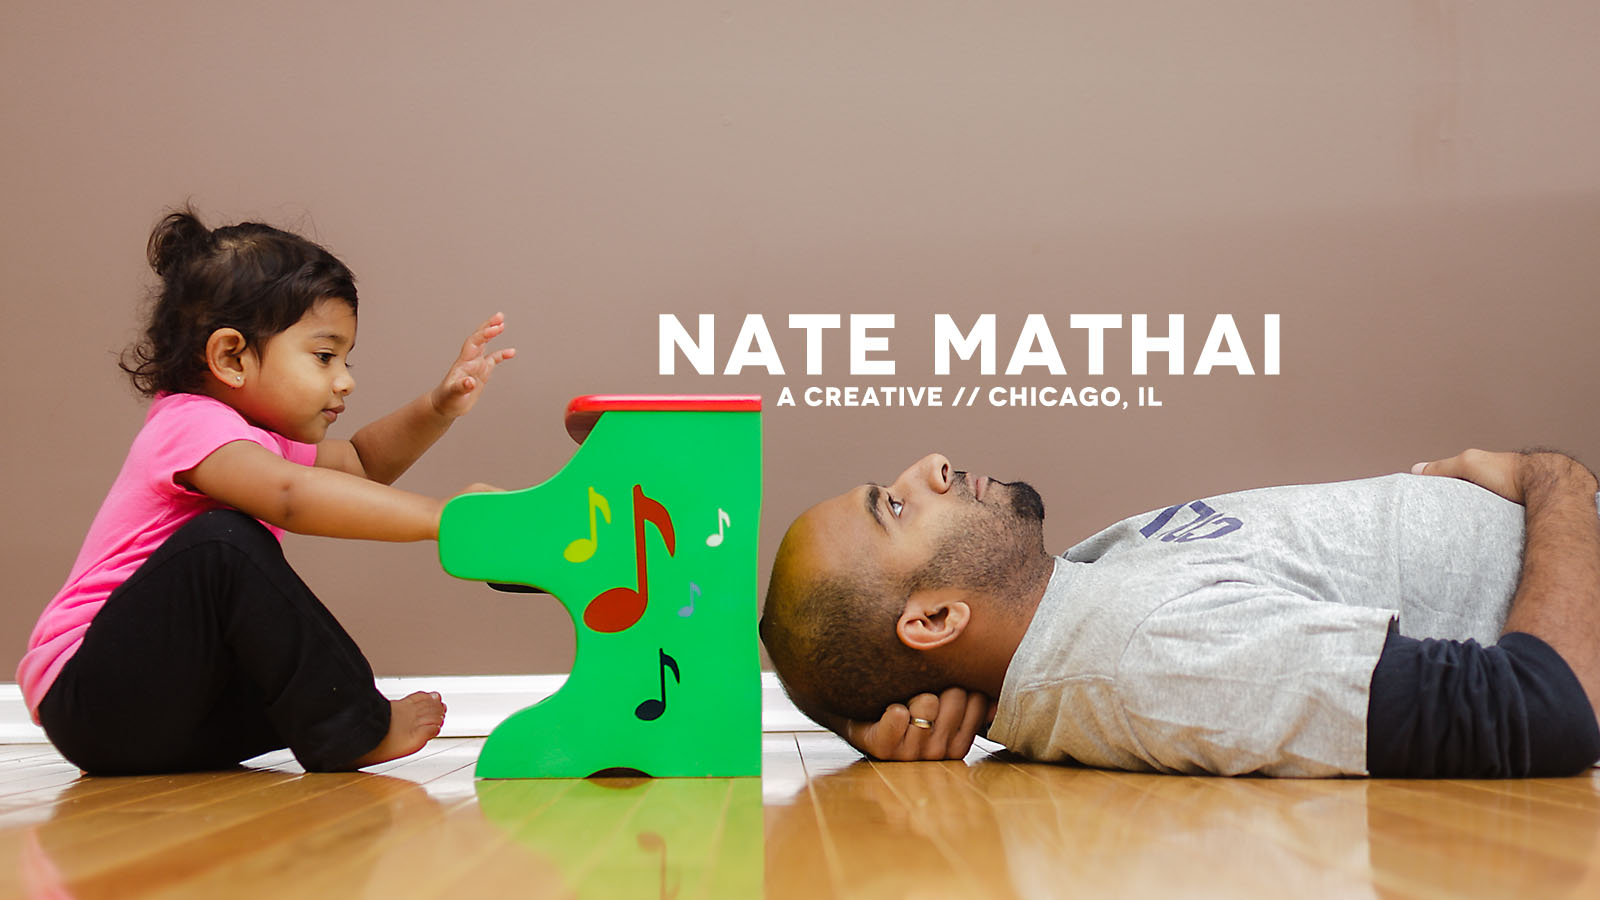 top image for Christmas Gifts by chicago wedding photographer nate mathai